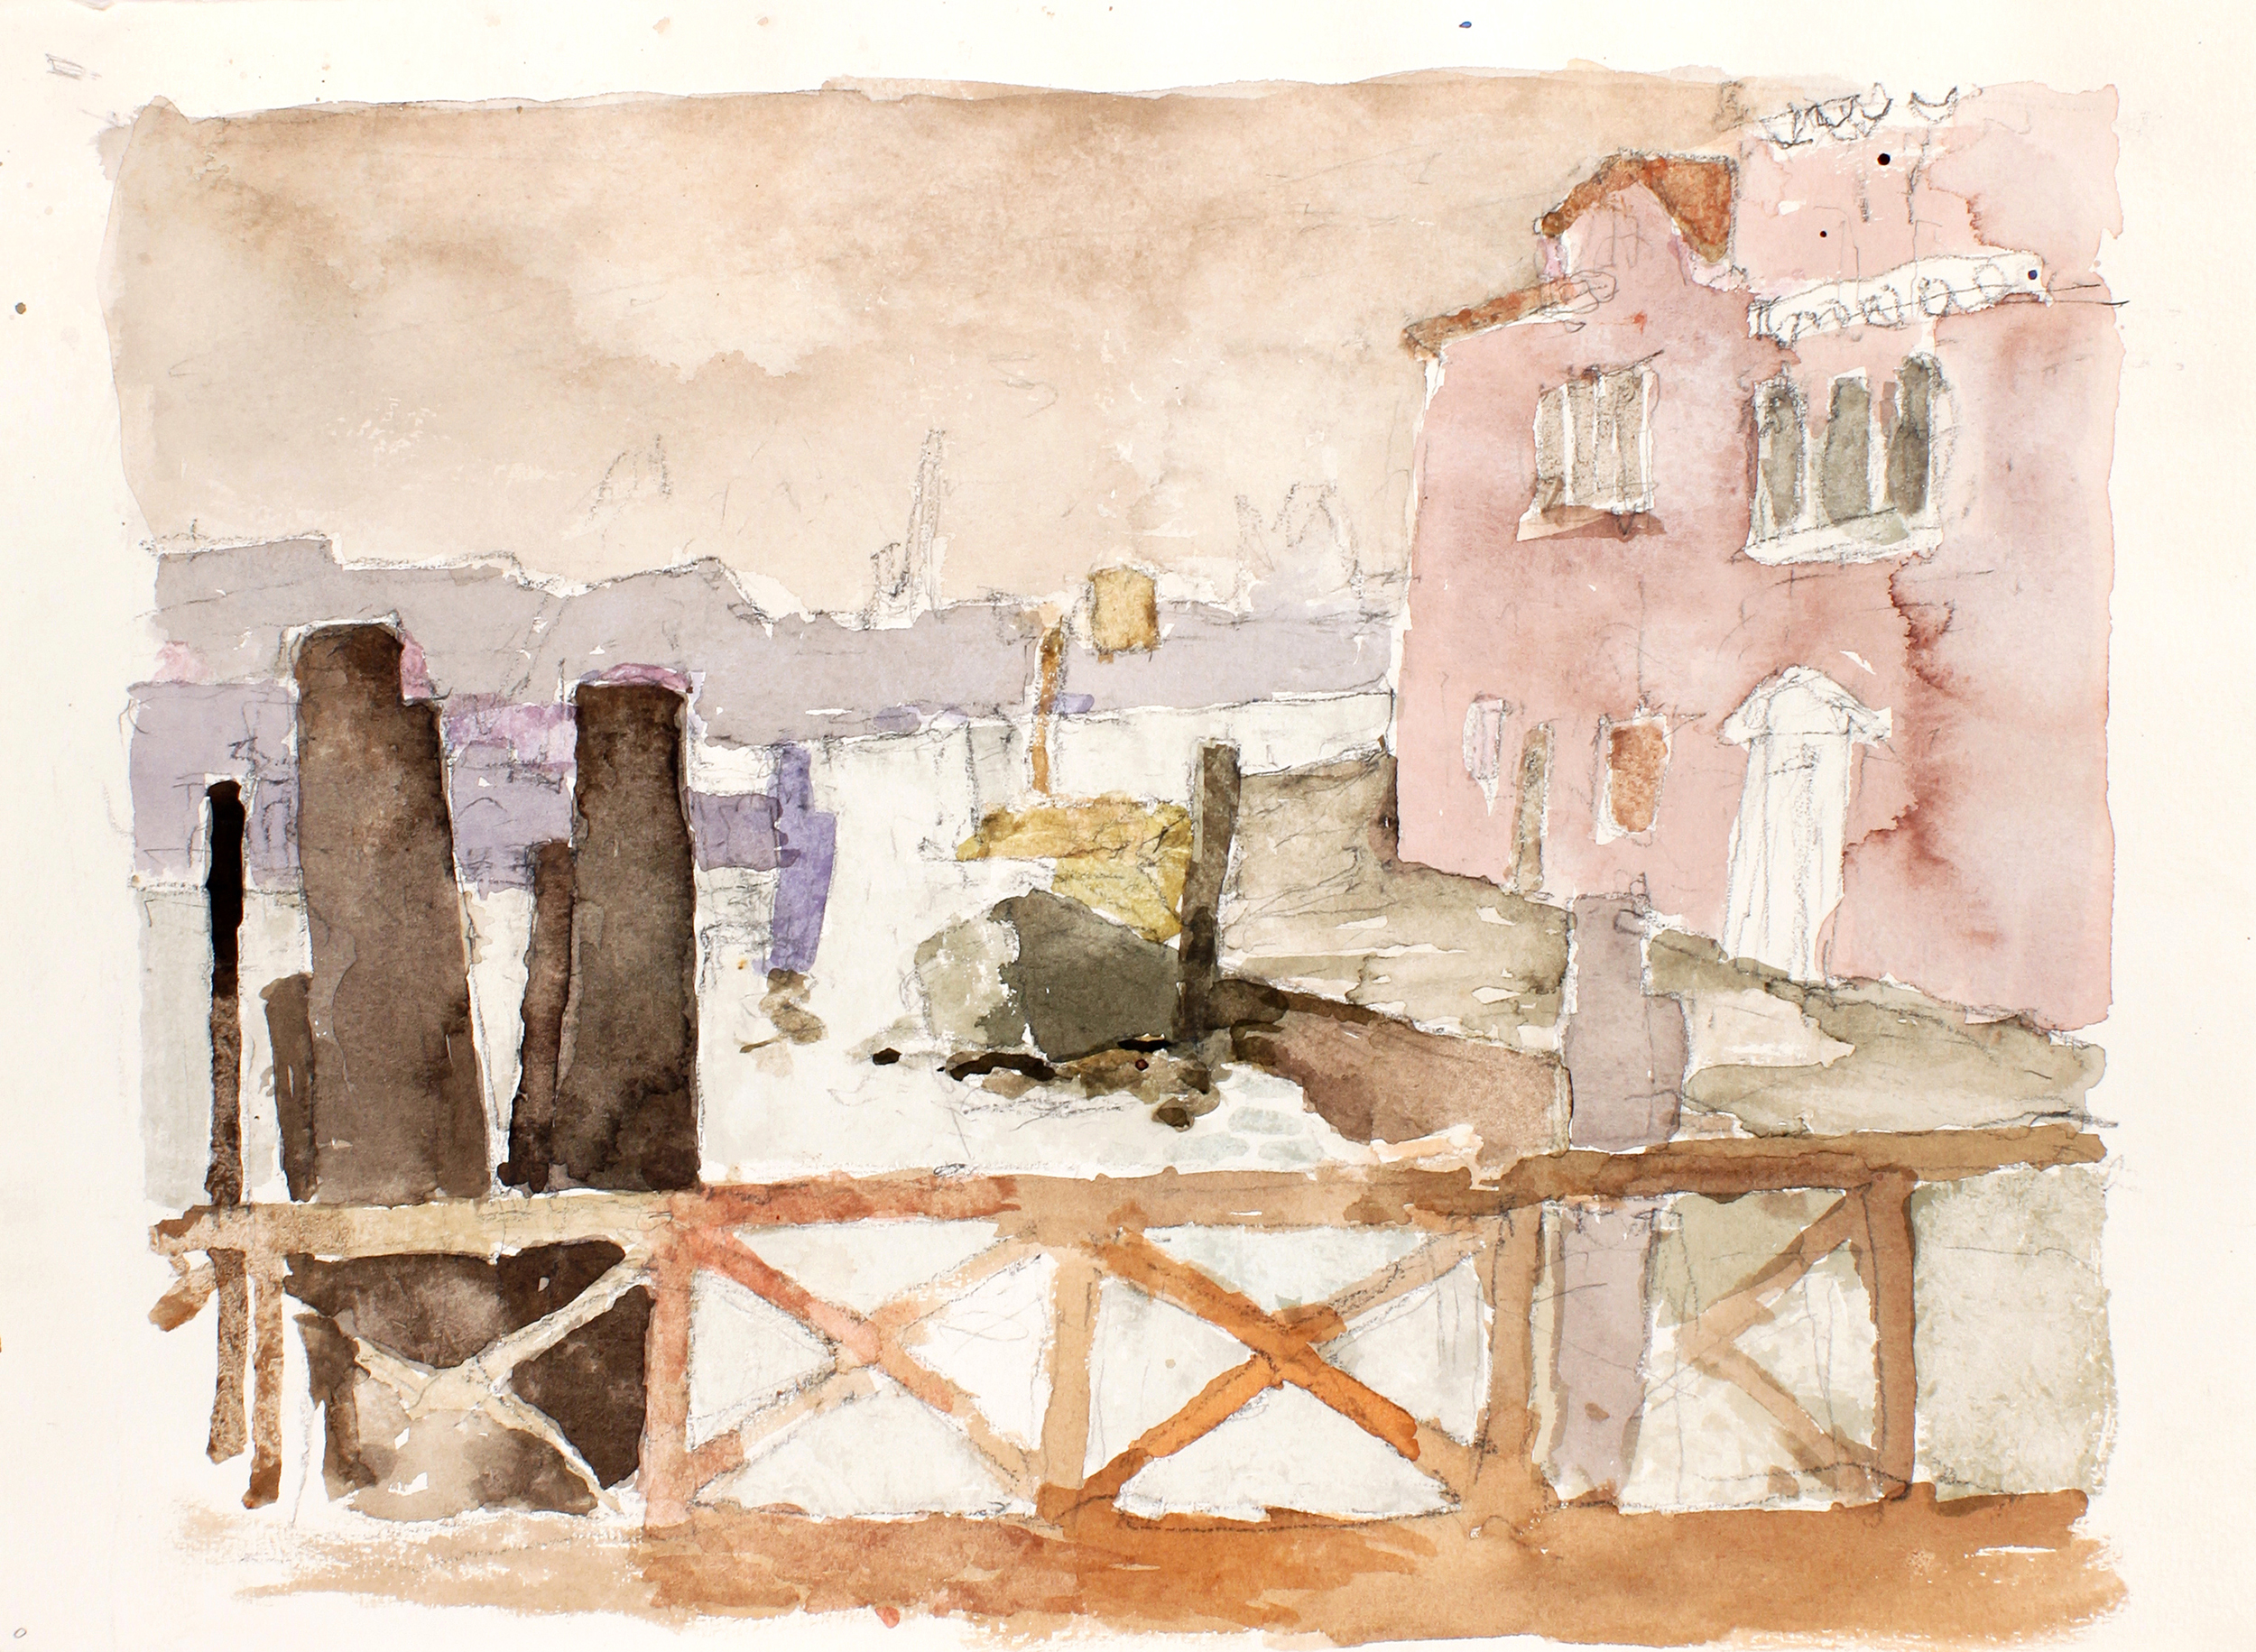 2007_Venice_Bridge_watercolour_and_pencil_on_paper_11x15in_WPF116.jpg